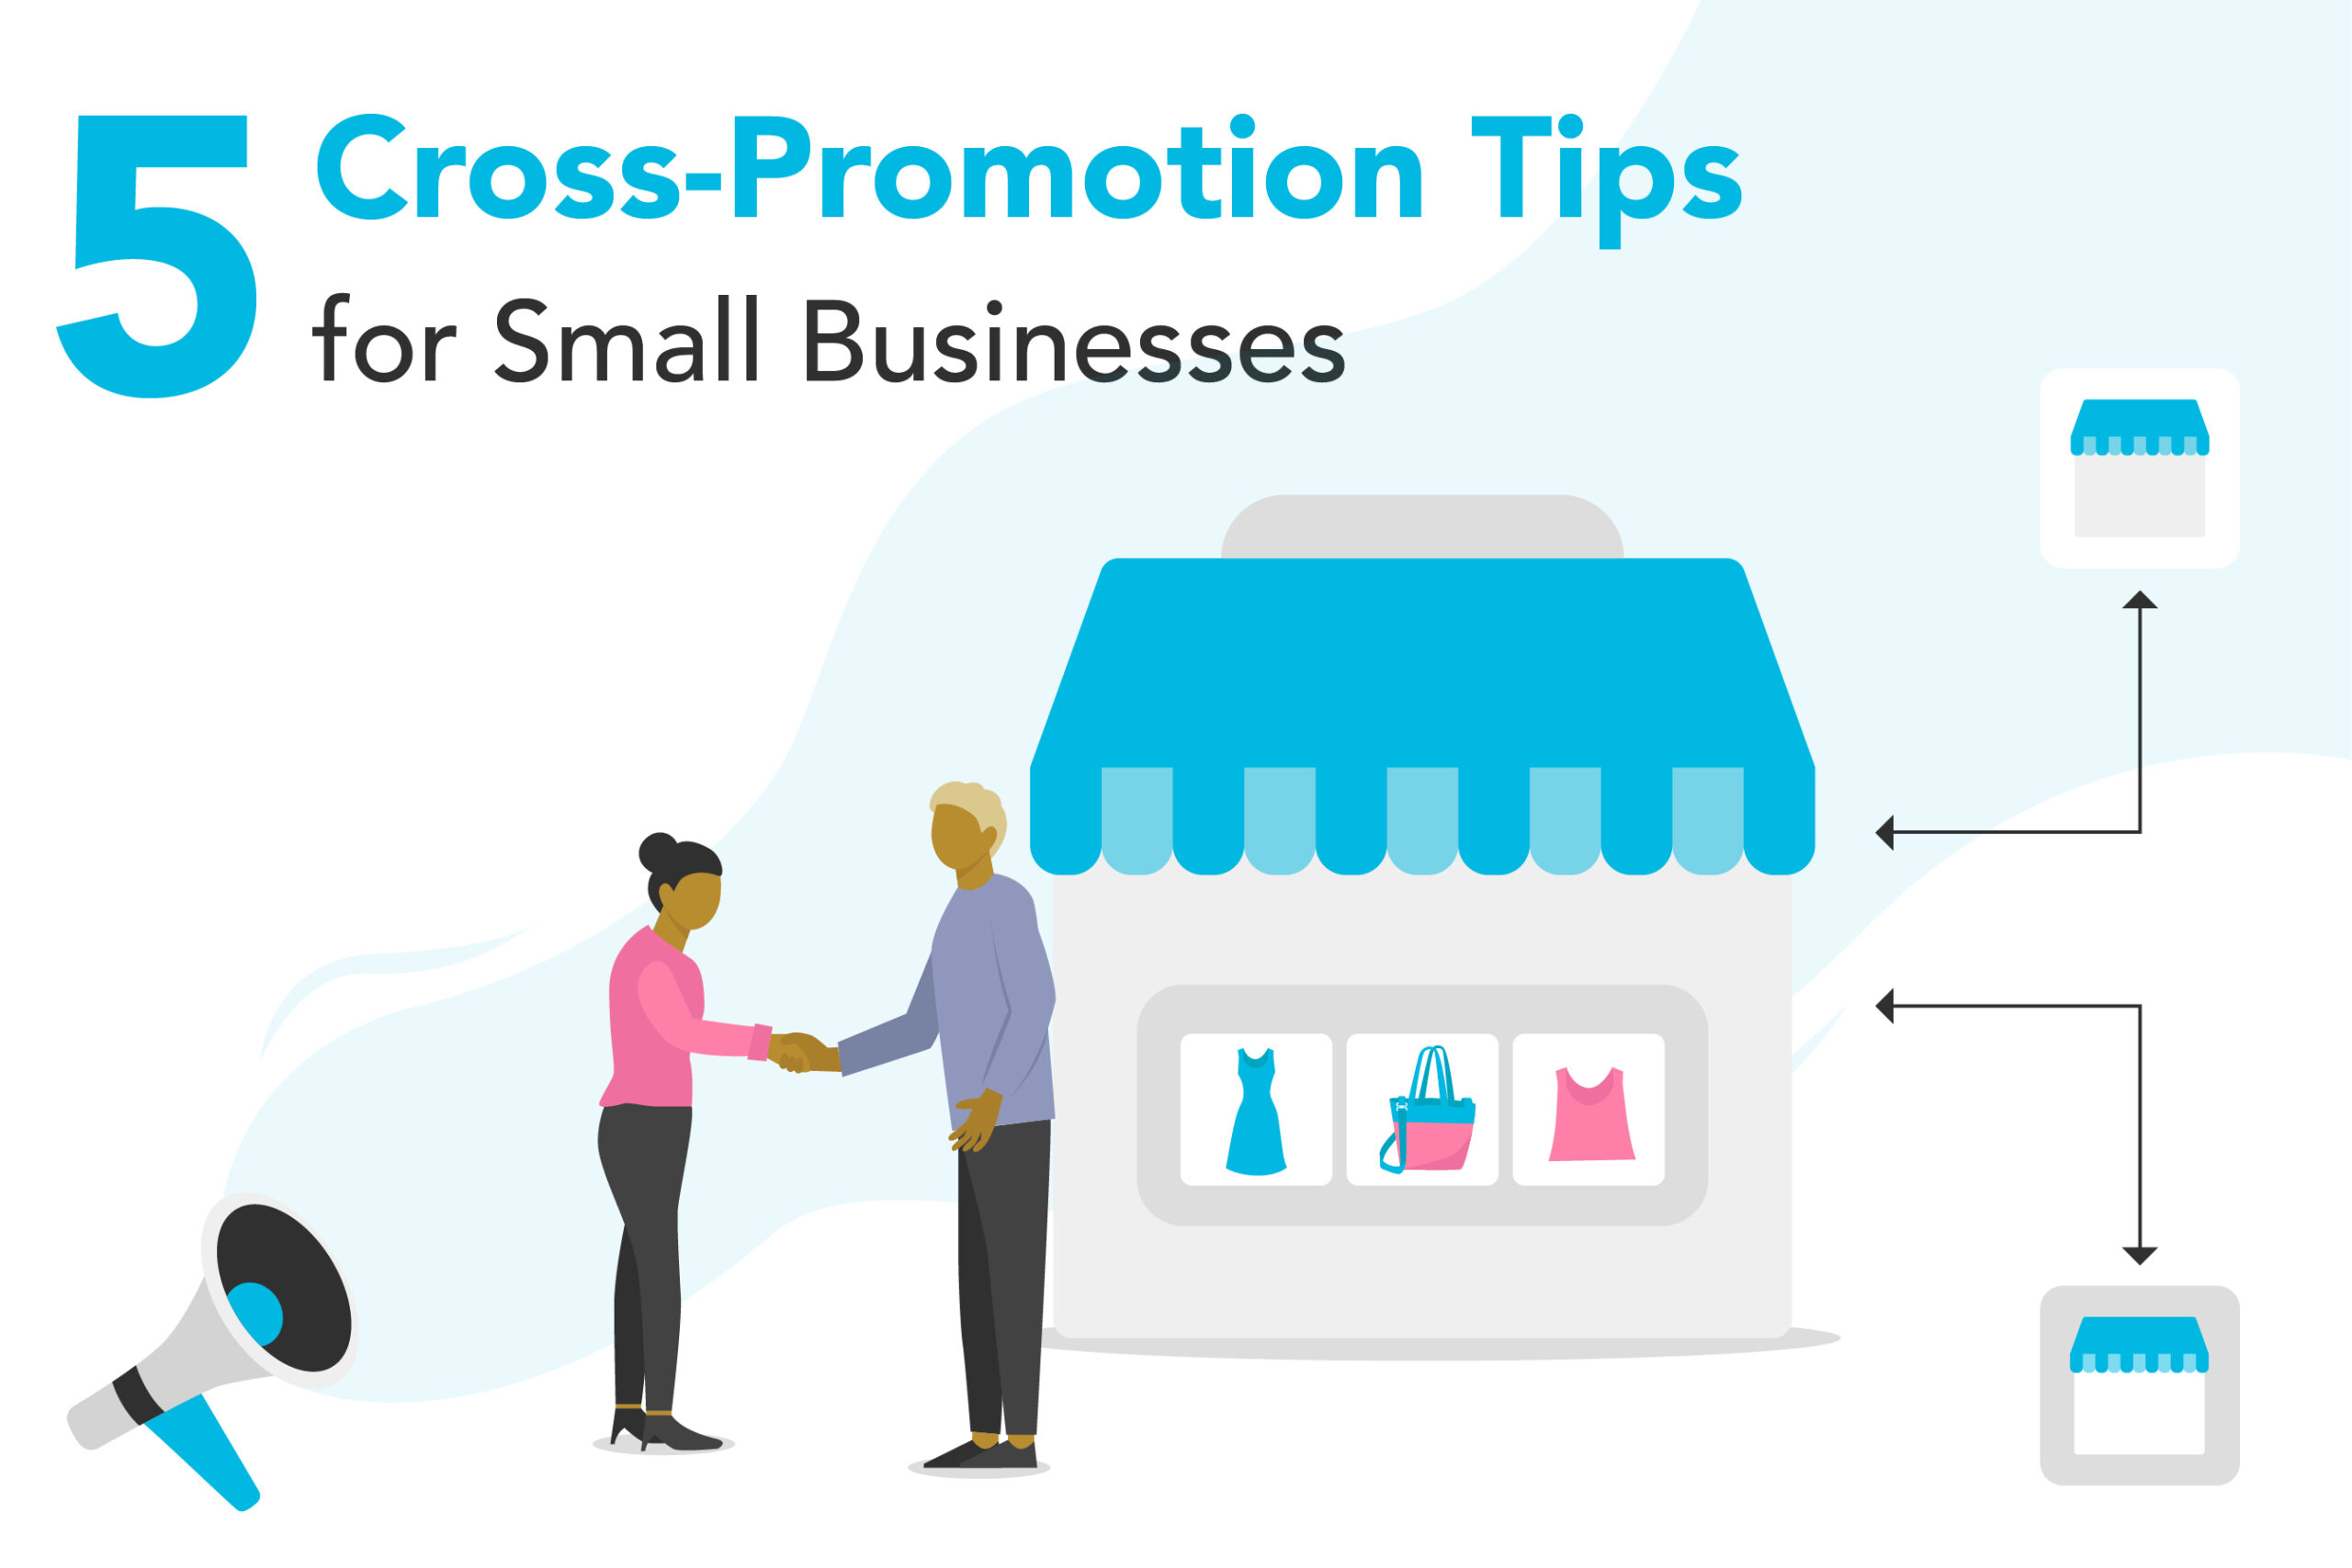 5 Cross-Promotion Tips for Small Businesses